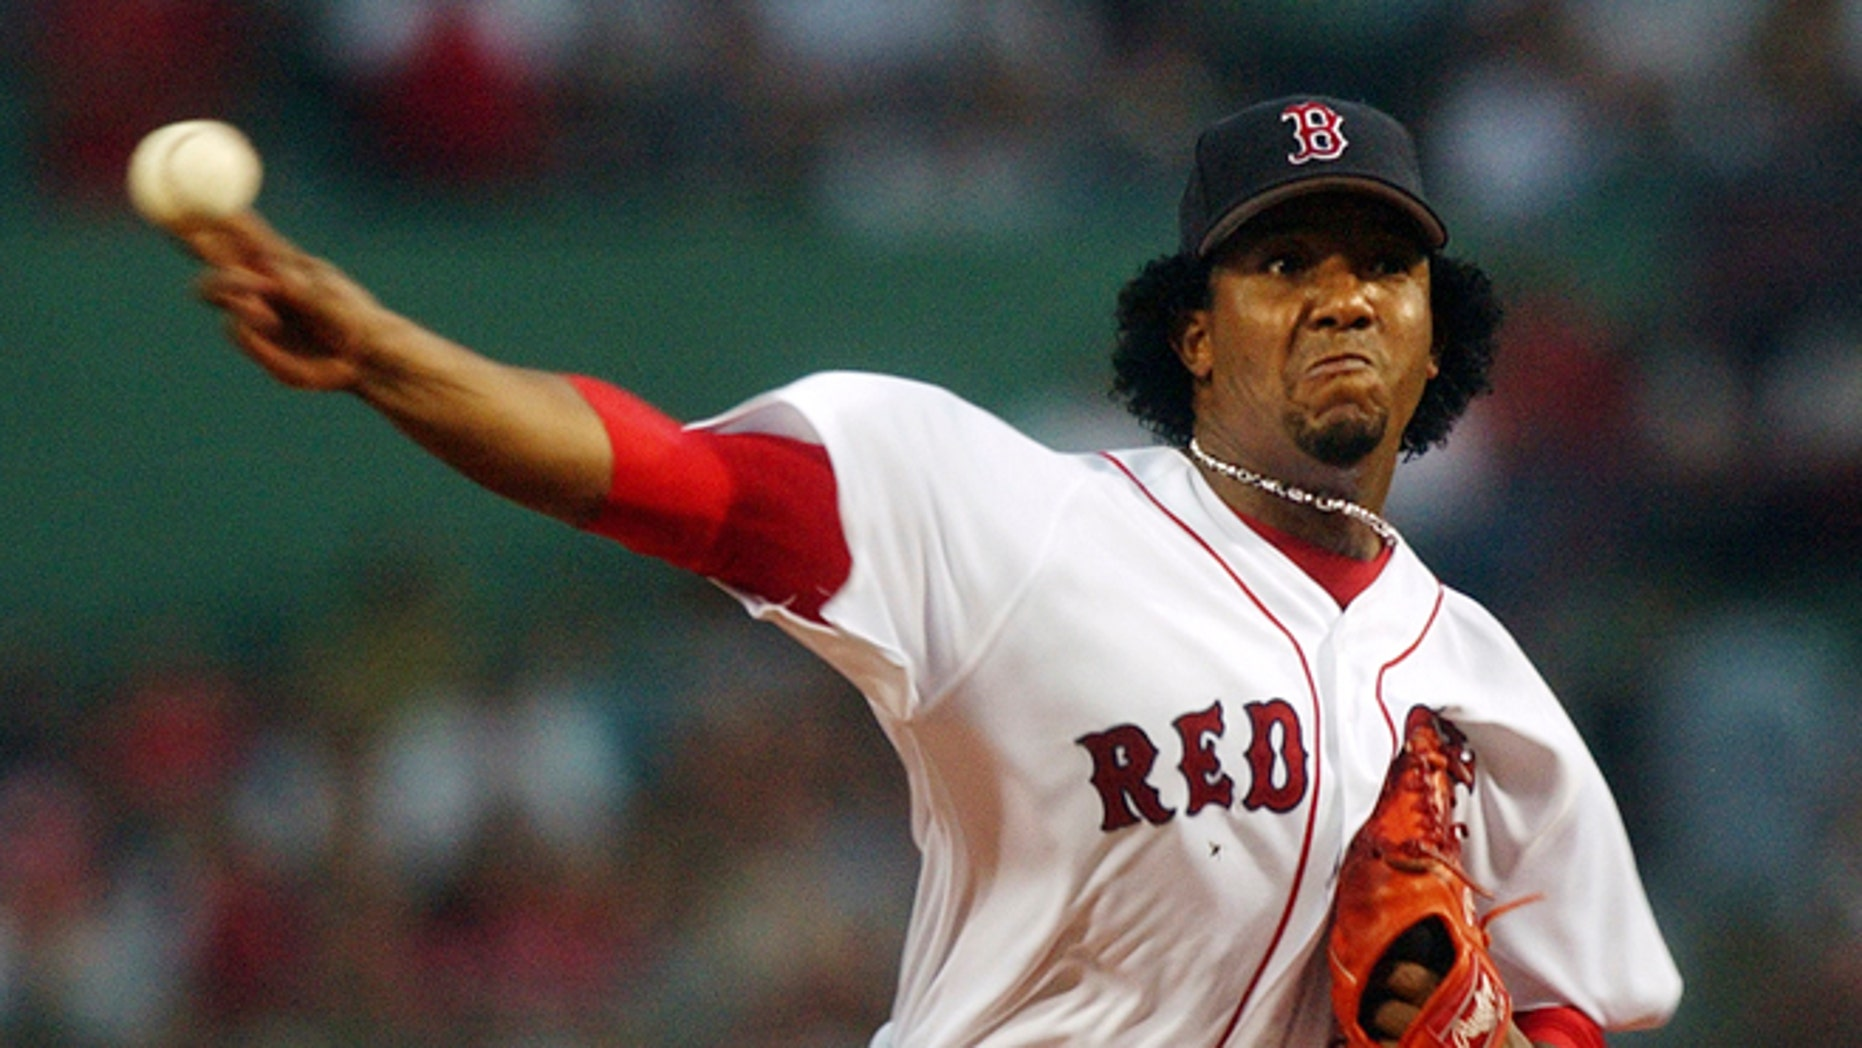 FILE - In this June 25, 2004 file photo, Boston Red Sox starting pitcher Pedro Martinez delivers during the first inning of a Major League baseball game against the Philadelphia Phillies at Fenway Park in Boston. Martinez is among among 17 first-time candidates on the 2015 Baseball Hall of Fame ballot. (AP Photo/Charles Krupa, File)